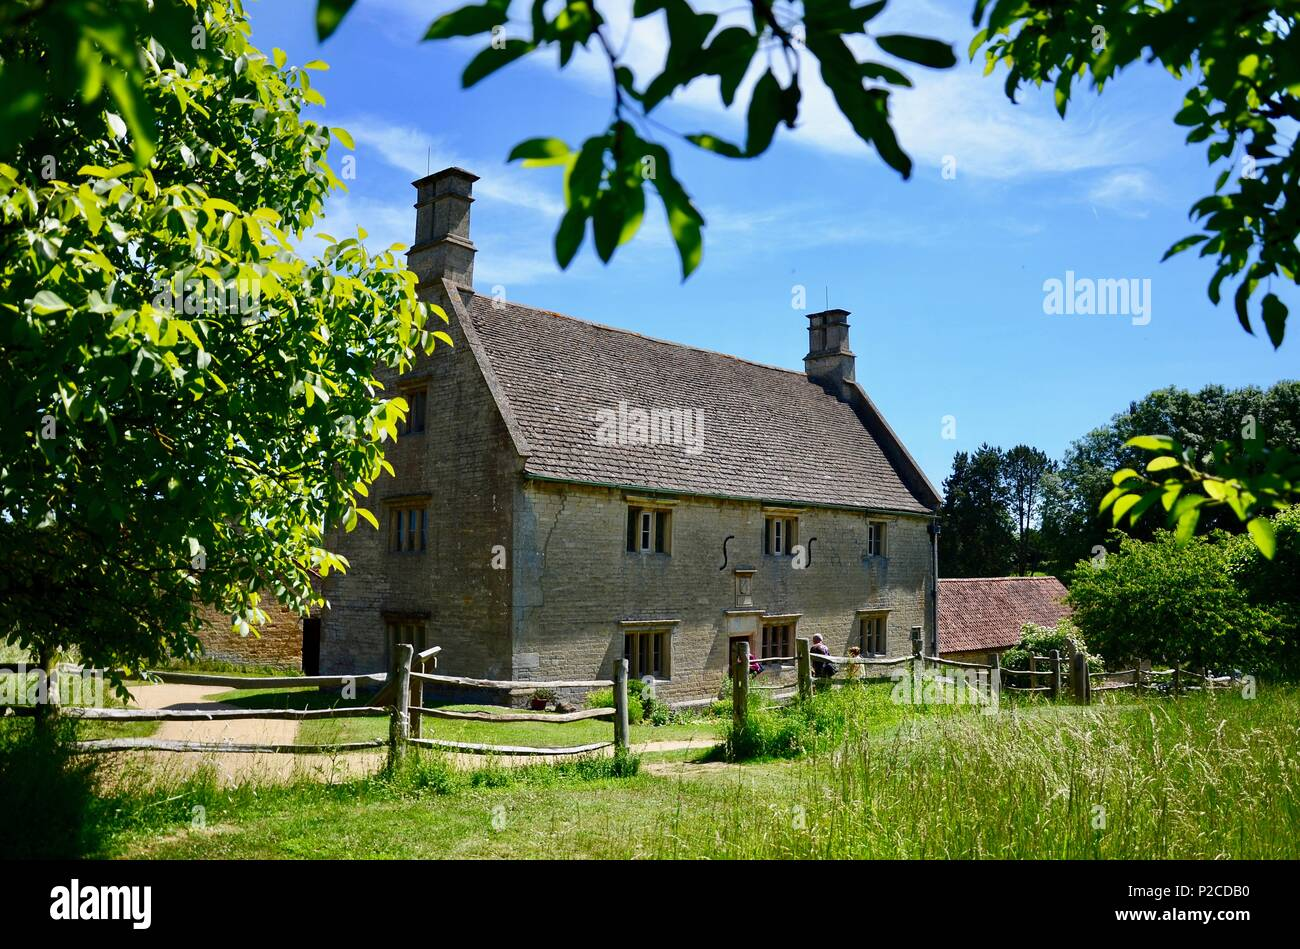 Exterior of Woolsthorpe Manor, Lincolnshire, birthplace and home of the scientist and mathematician Sir Isaac Newton. - Stock Image